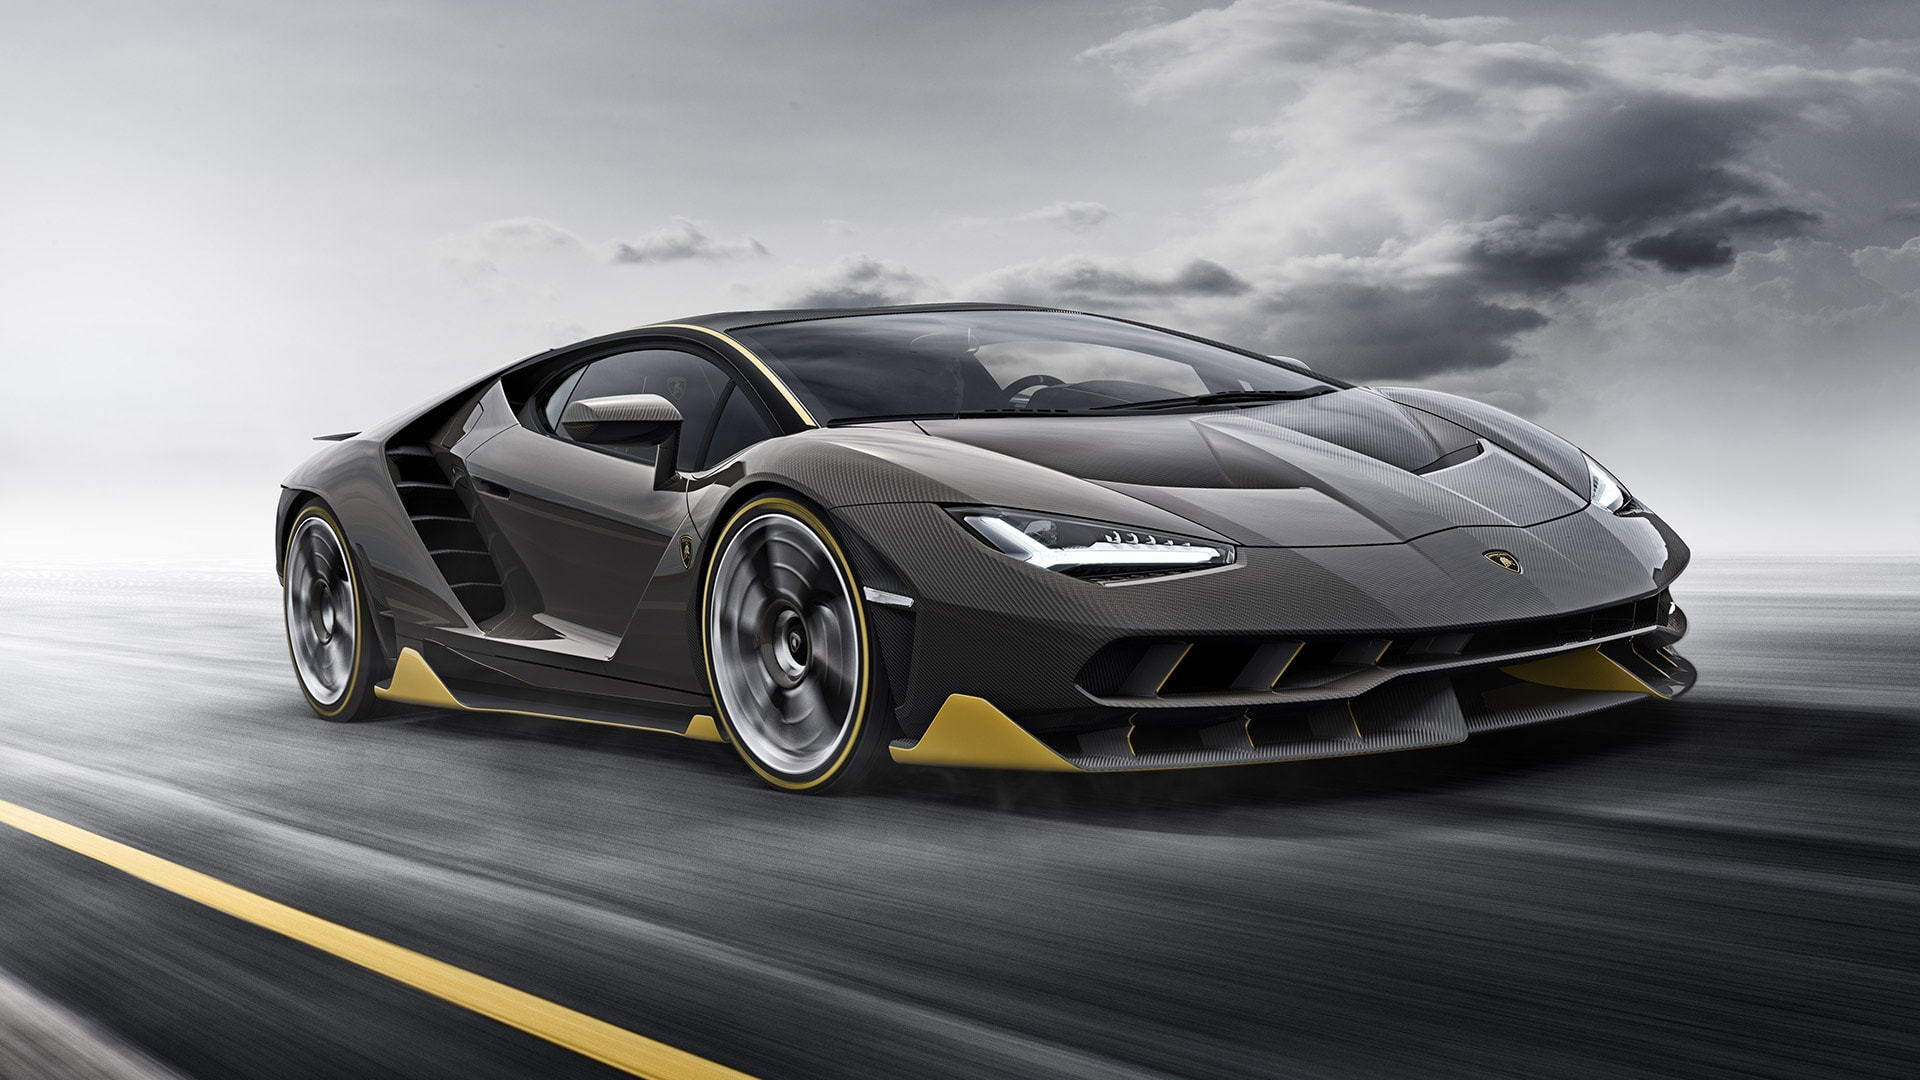 Lamborghini Centenario - Technical Specifications, Pictures, Videos